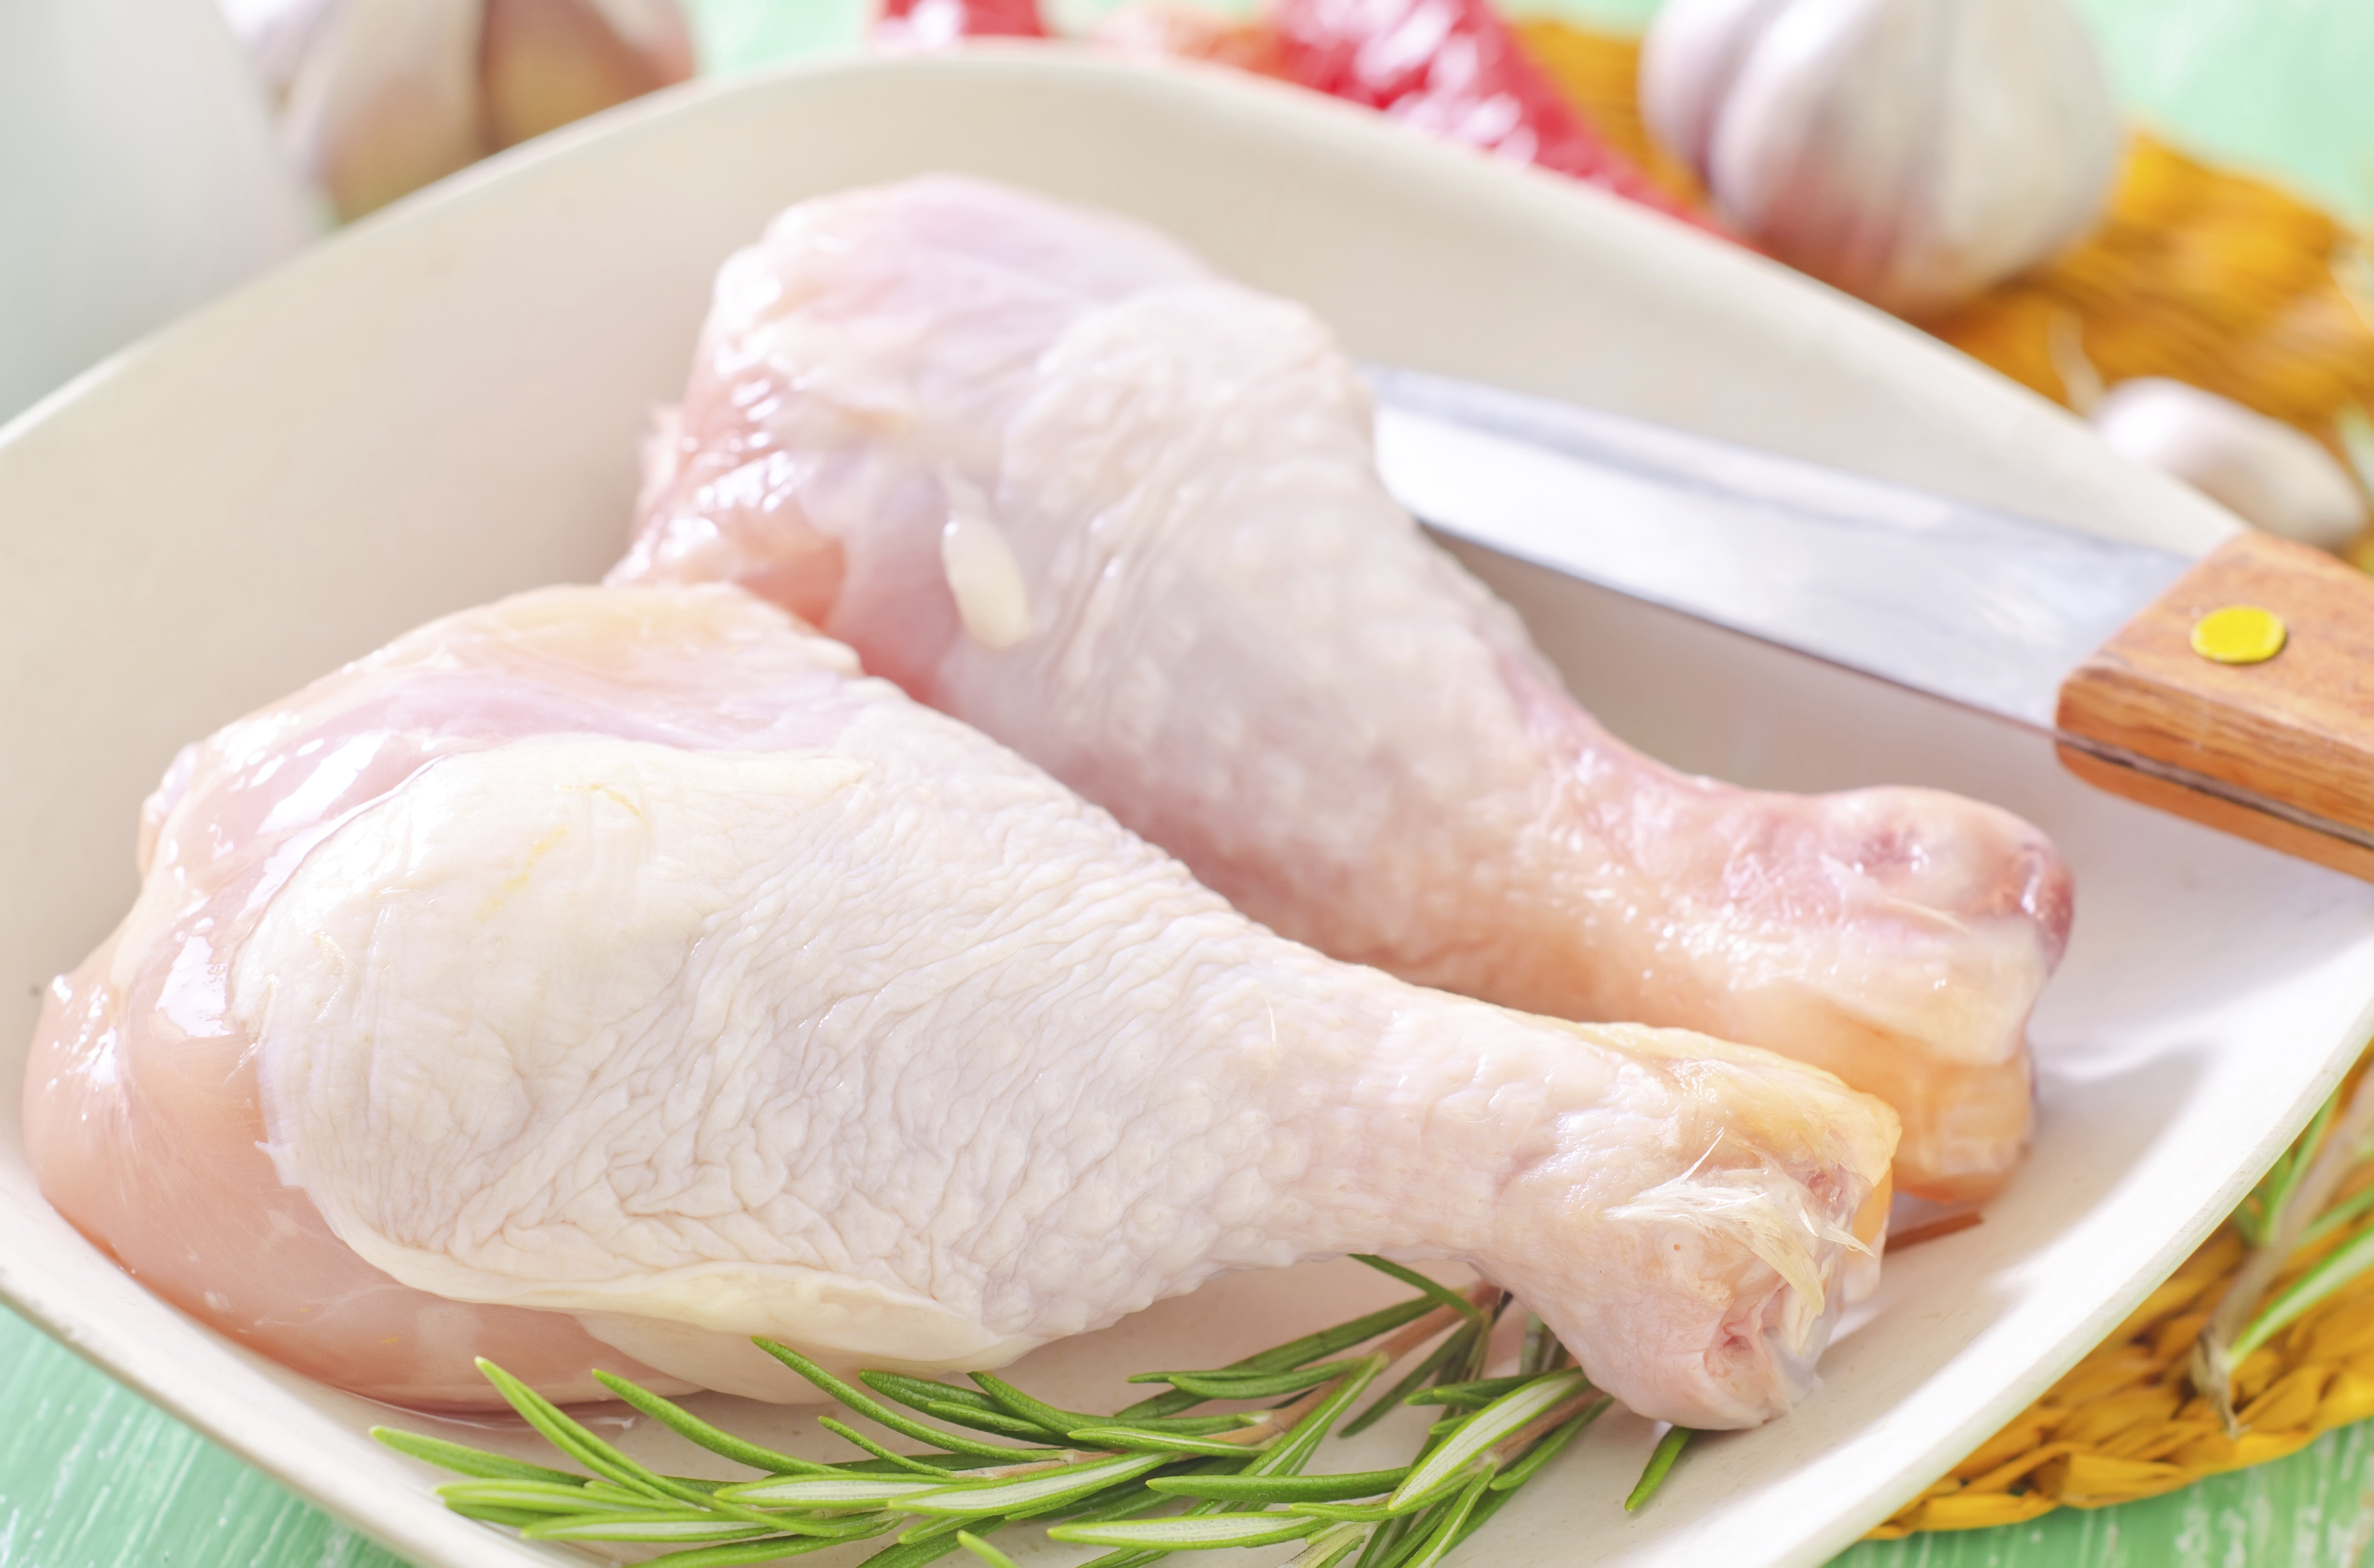 Does washing raw chicken make it safer to eat? - CBS News